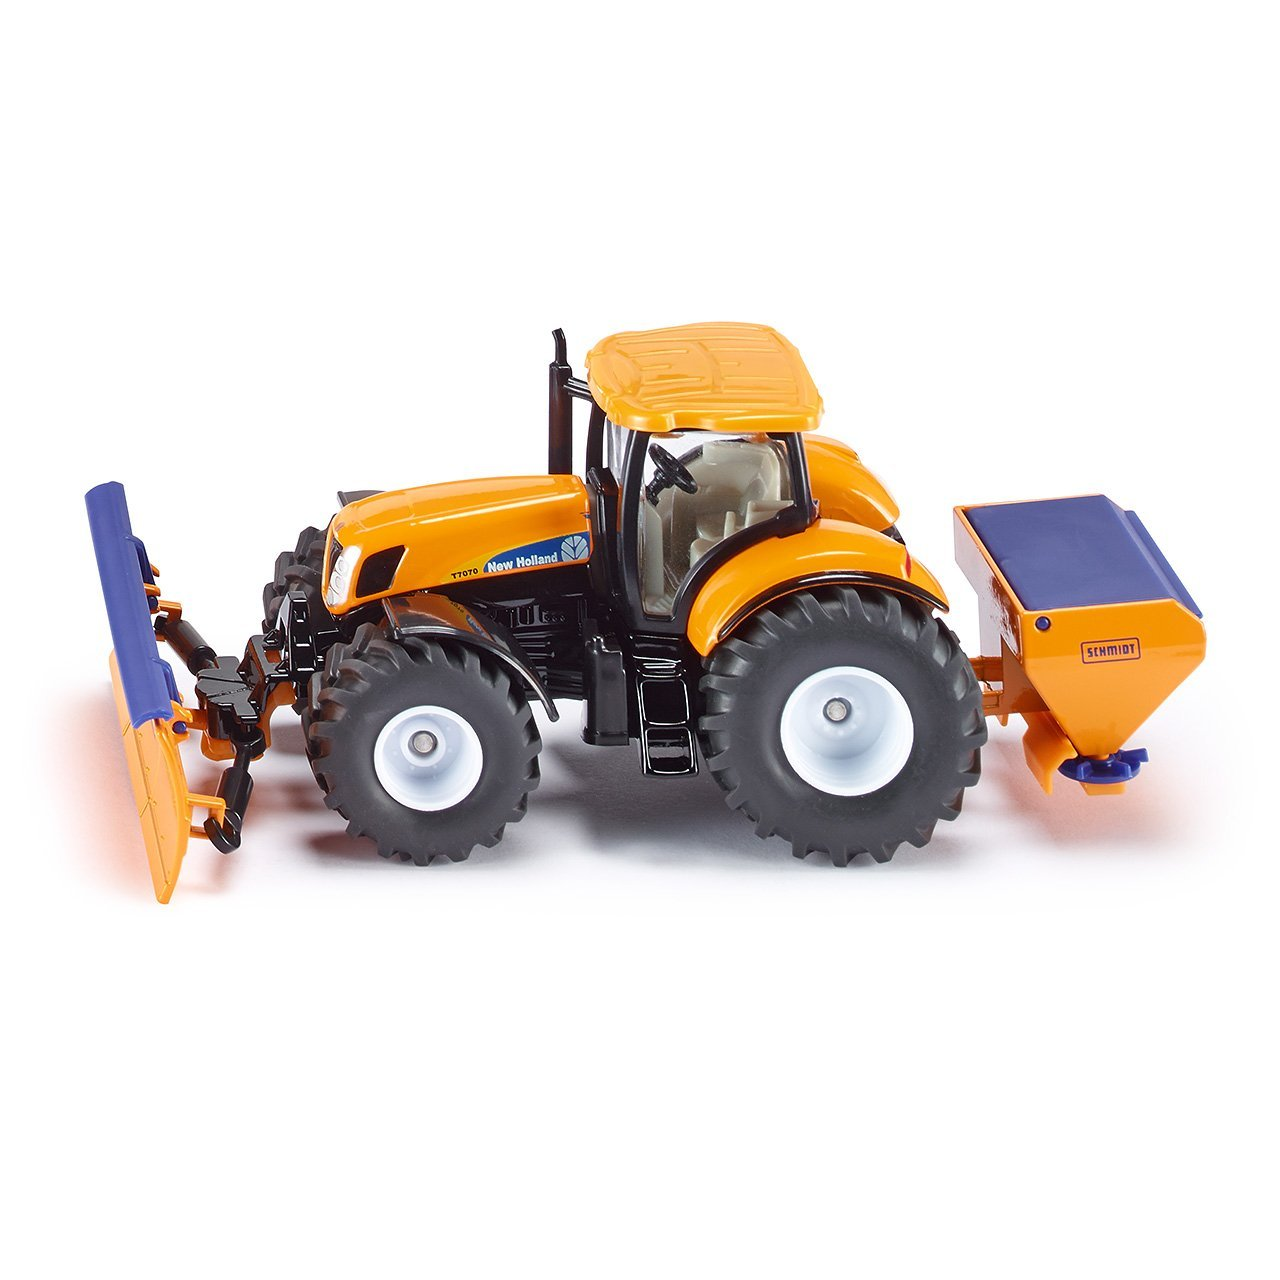 TRACTOR WITH SNOW PLOUGH & SALT SPREADER